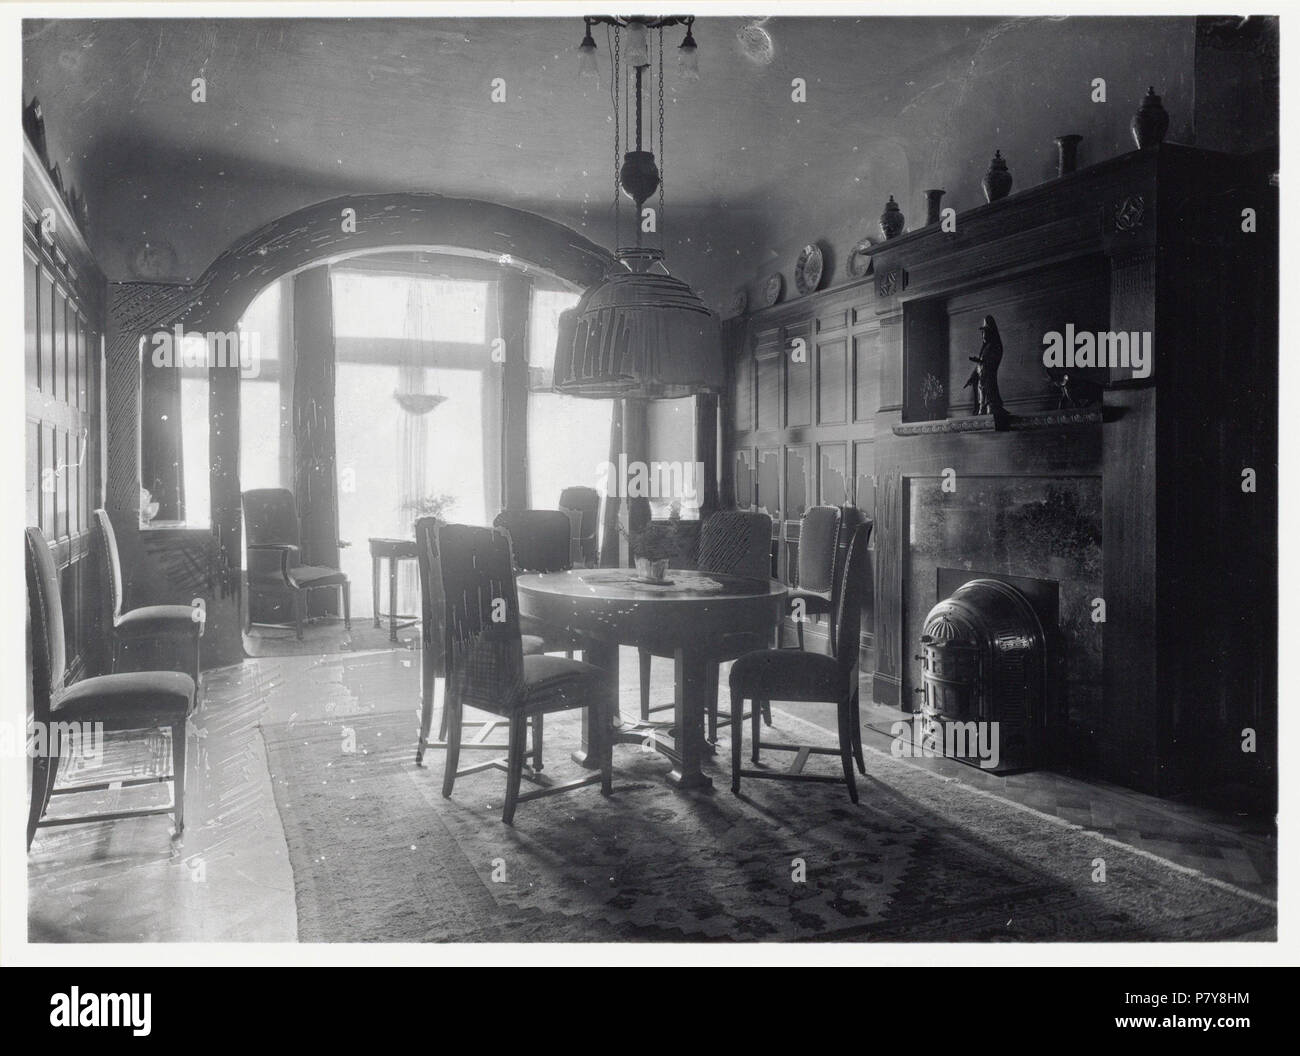 Ina S Eetkamer.Reens Stock Photos Reens Stock Images Alamy